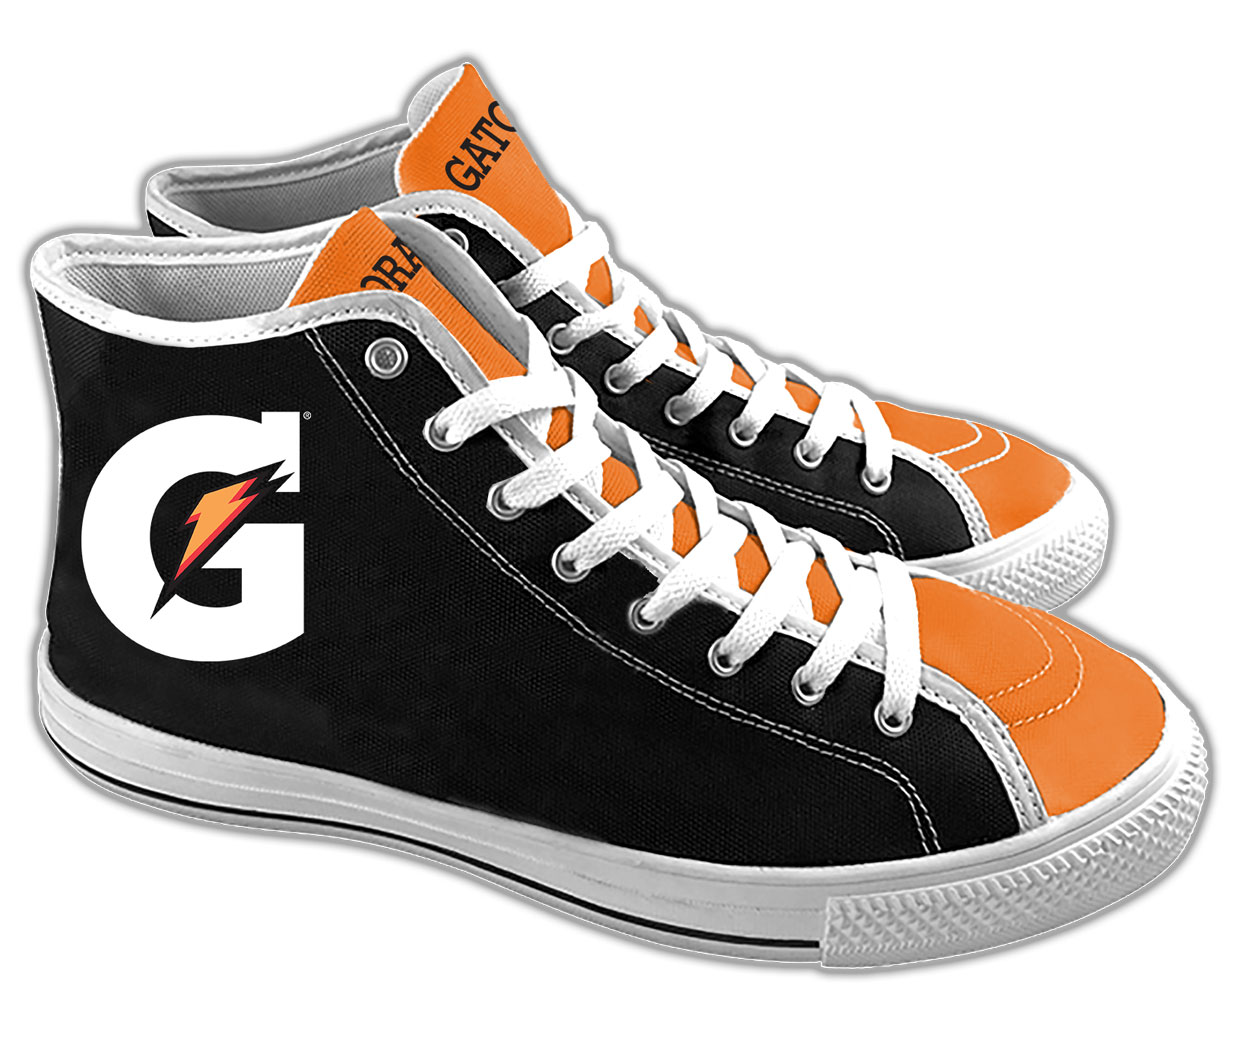 Ladies' Court Sneakers - Gatorade - Login For Special $